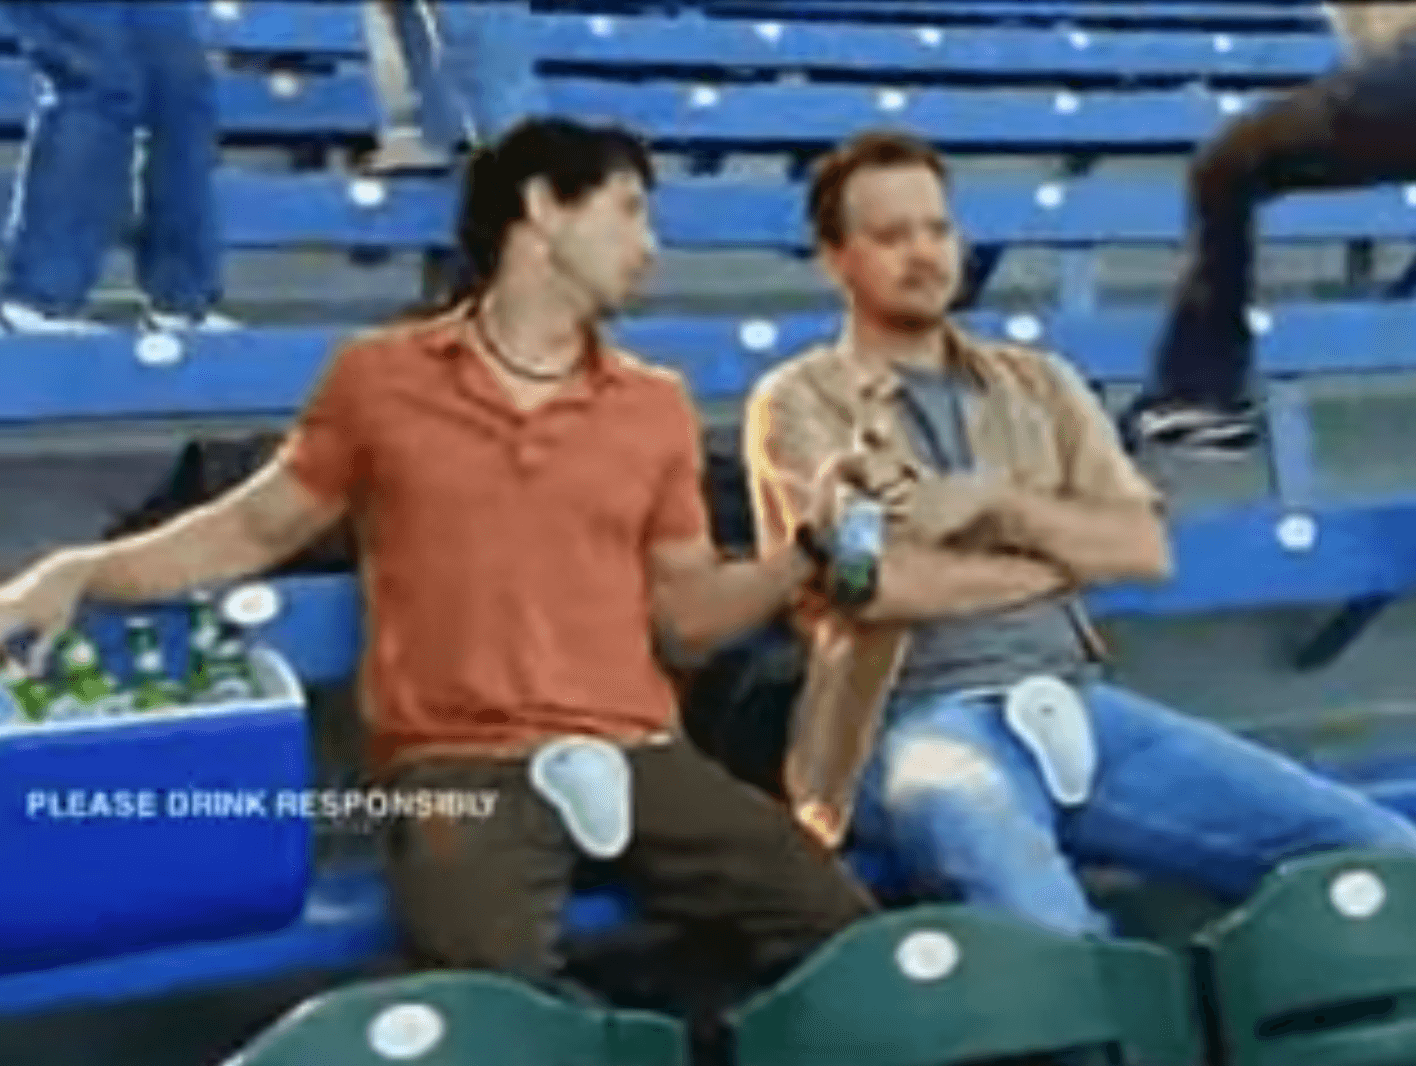 Beer superbowl commercial protective cup